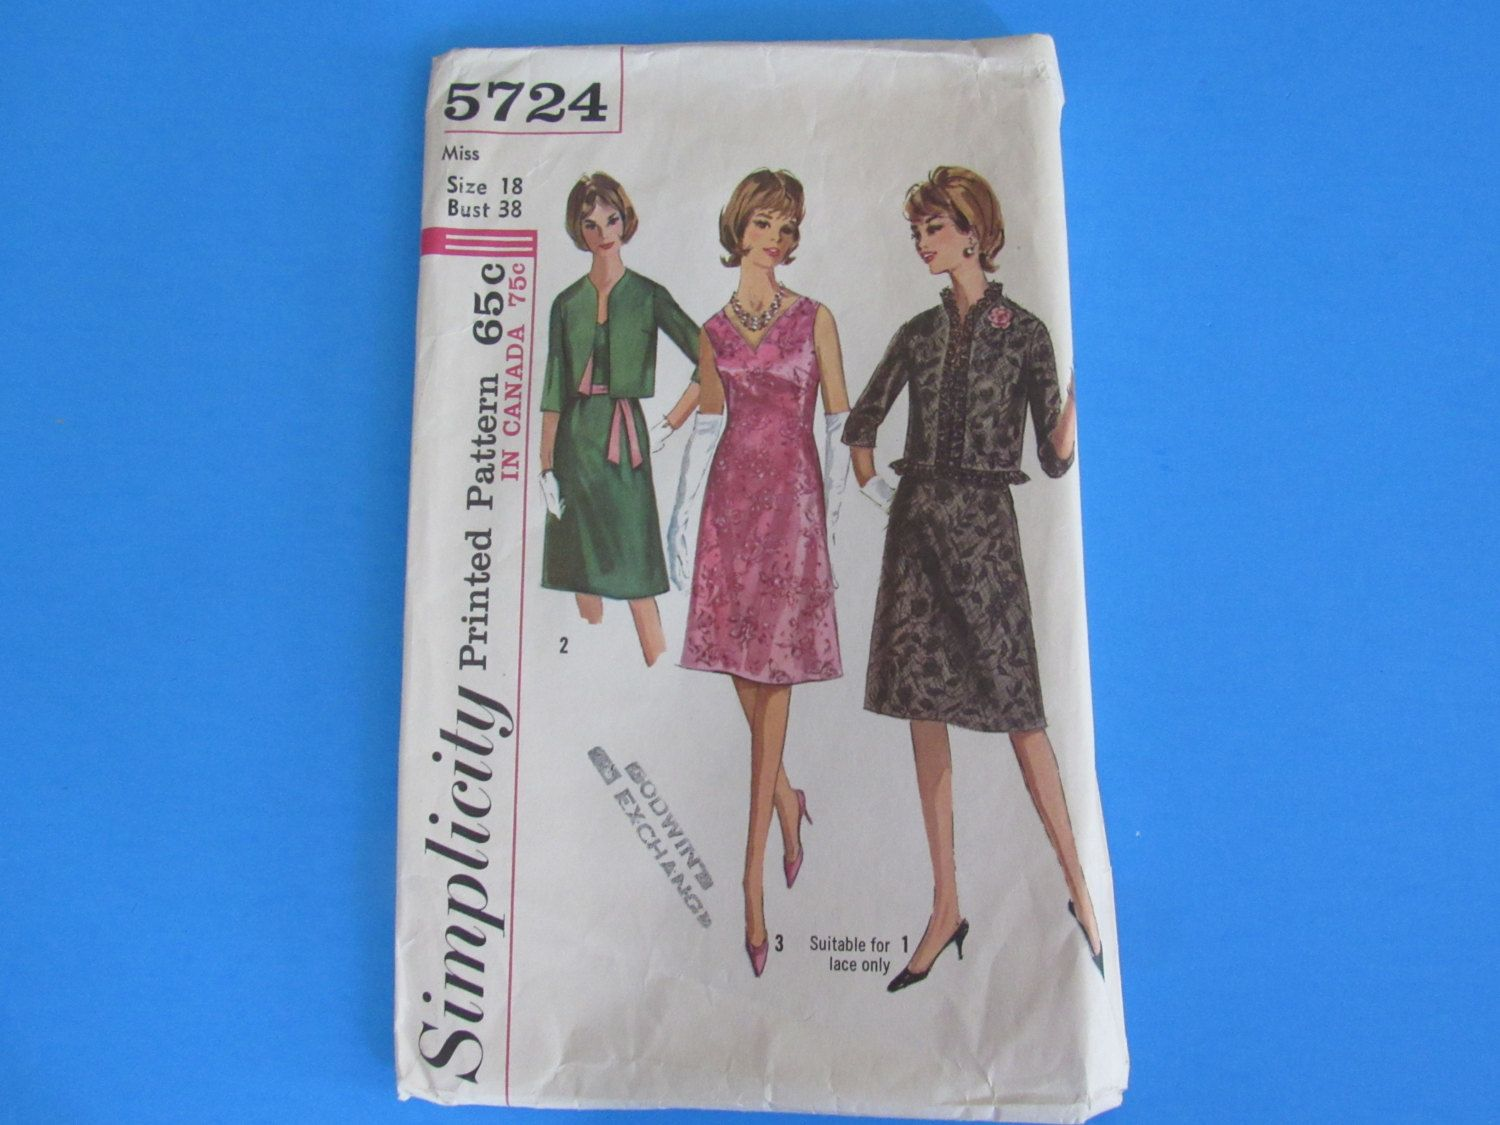 Vintage  Simplicity 1964 Dress and Jacket Pattern 5724 Size 18 Bust 38 by mariehotdeals on Etsy